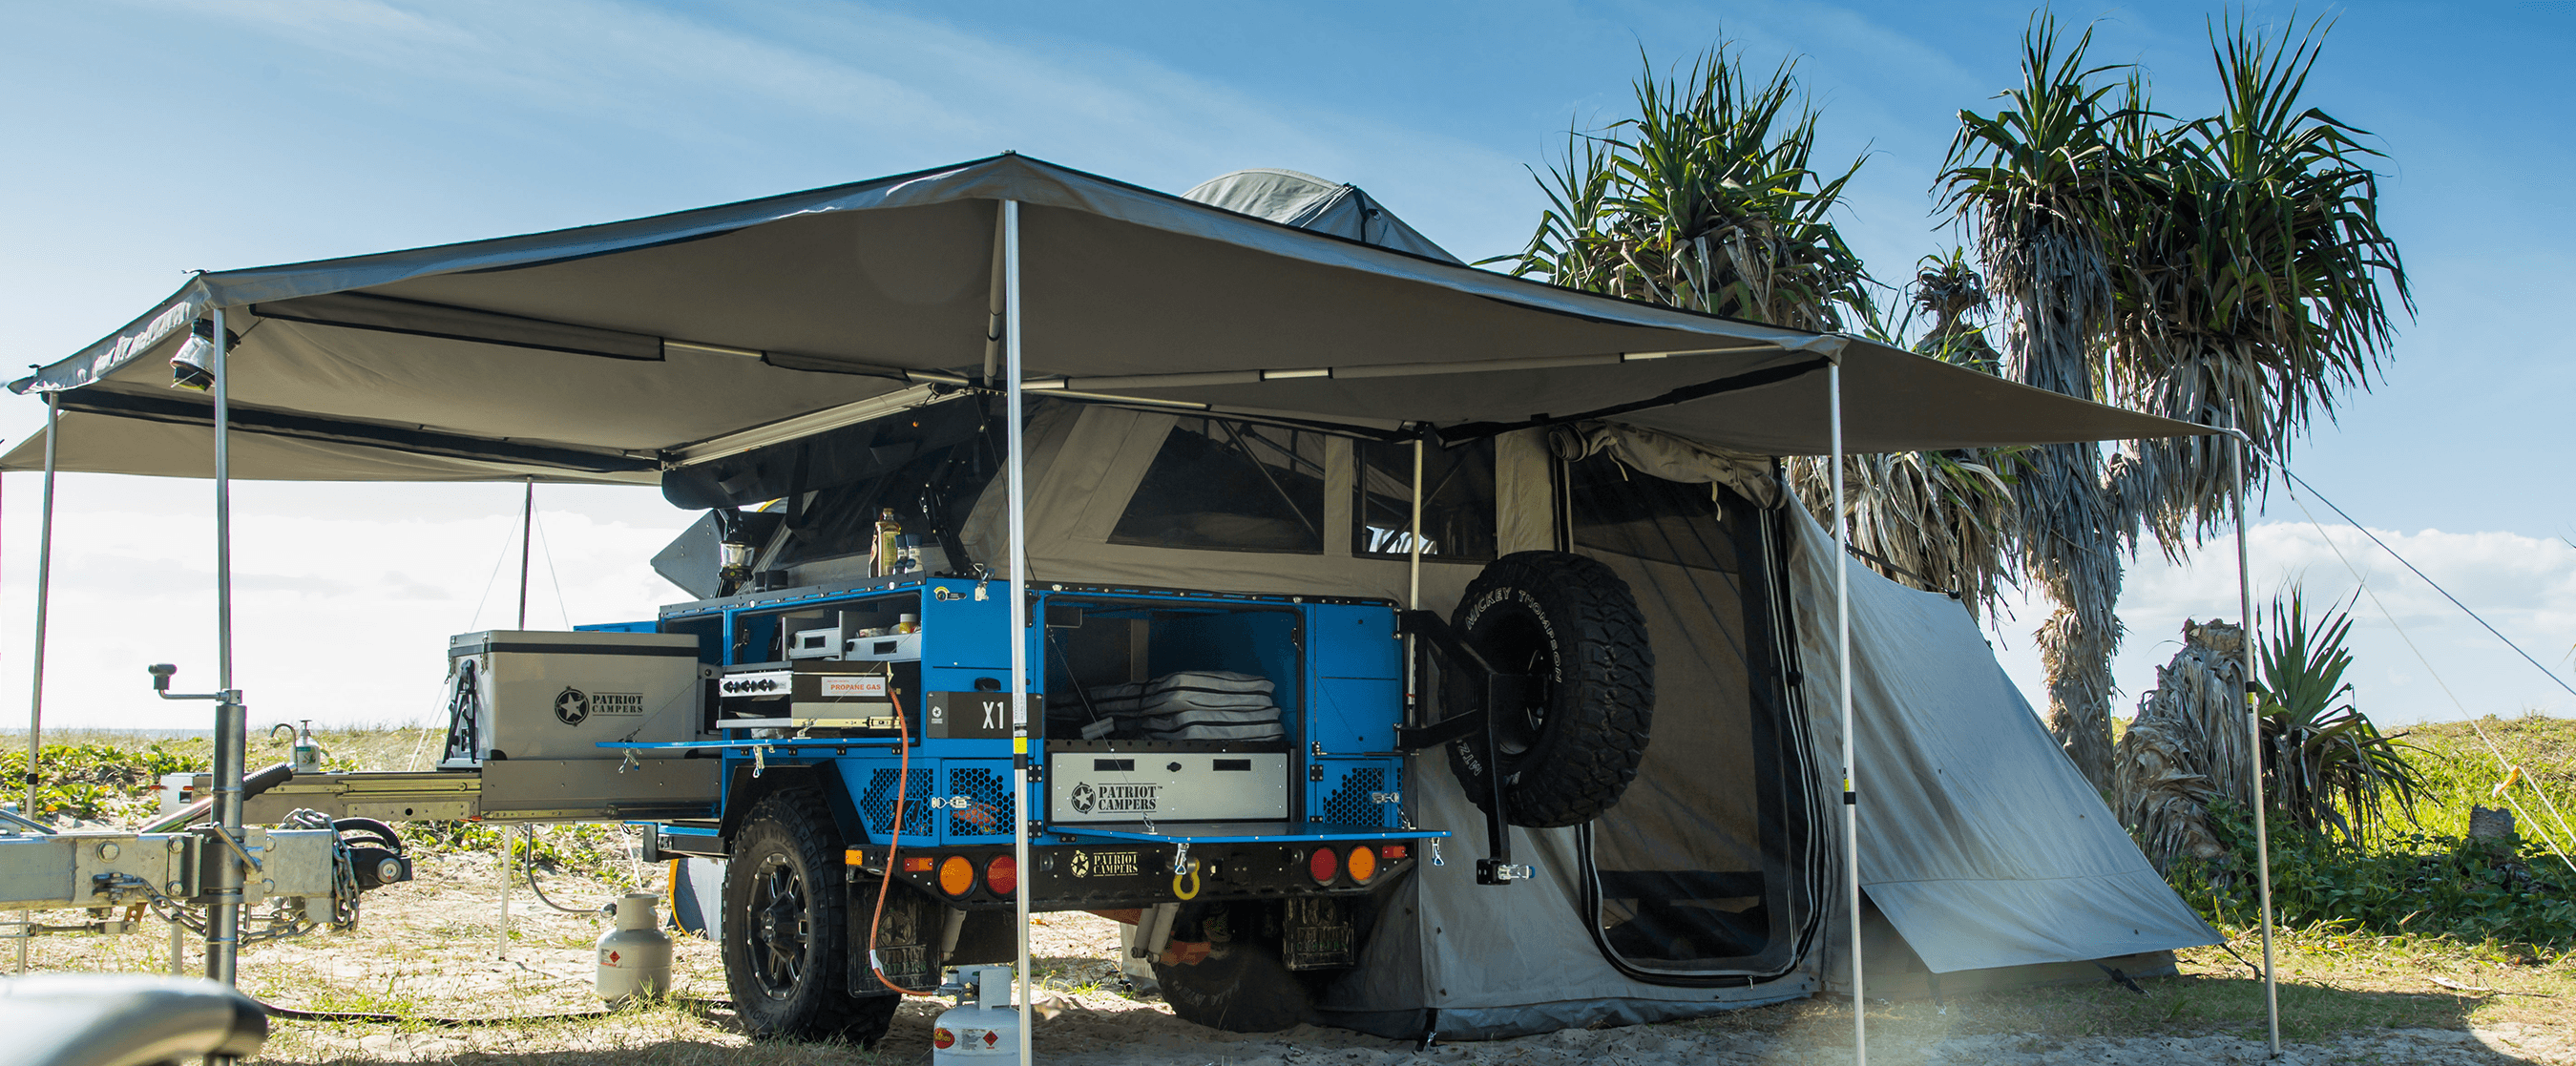 Camping Trailers Adept For Your Off-Road Adventures